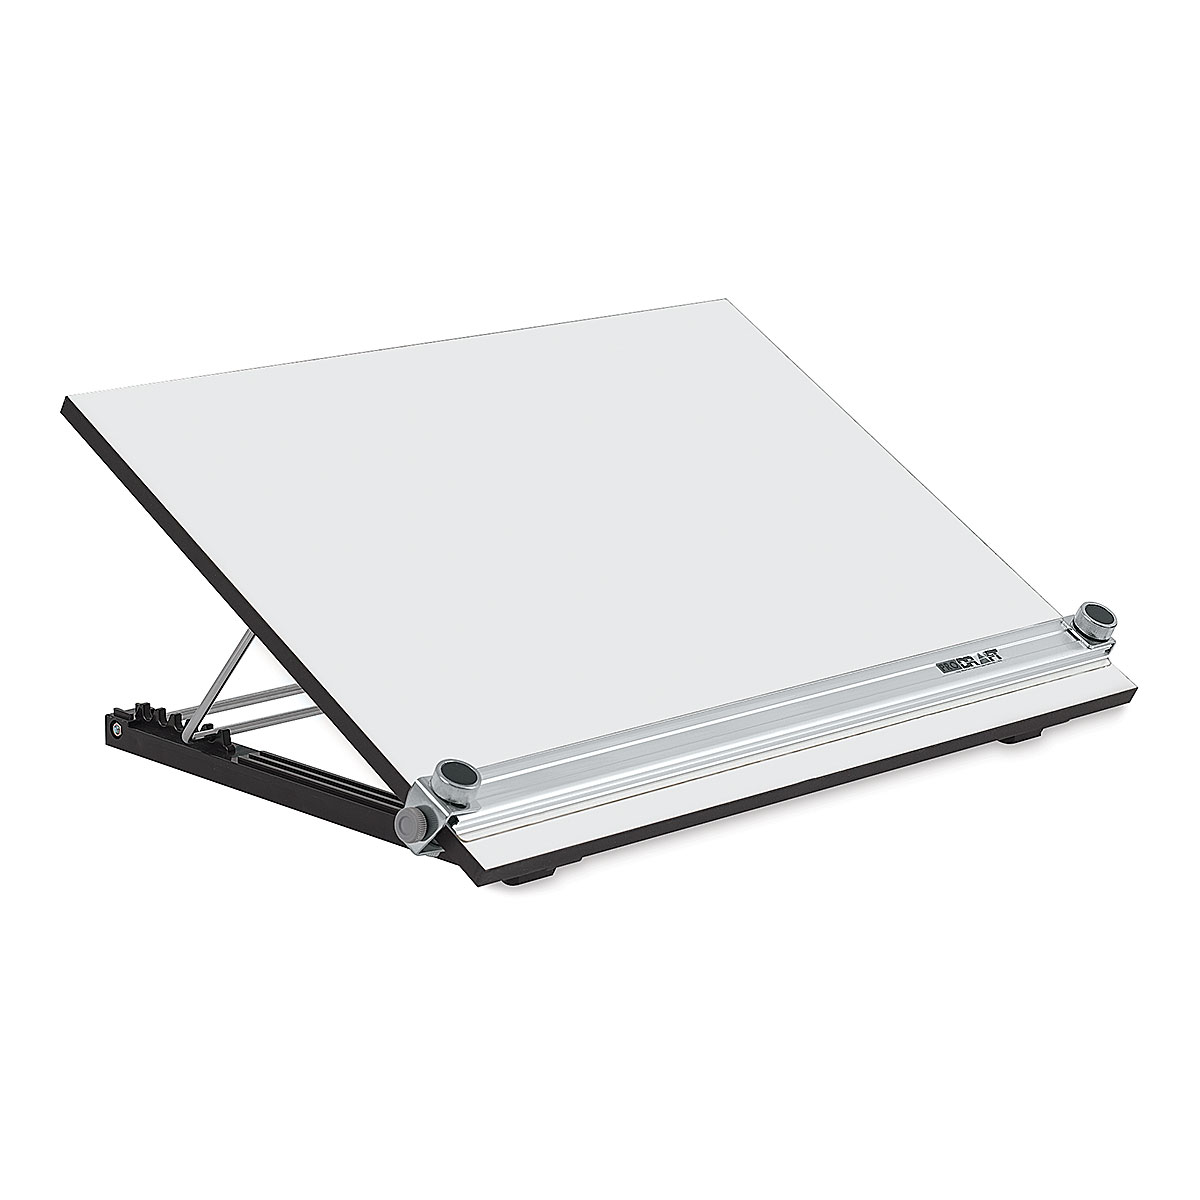 Martin Pro-Draft Deluxe Adjustable Angle Parallel Drawing Board 20 x 26 Inches 1 Each